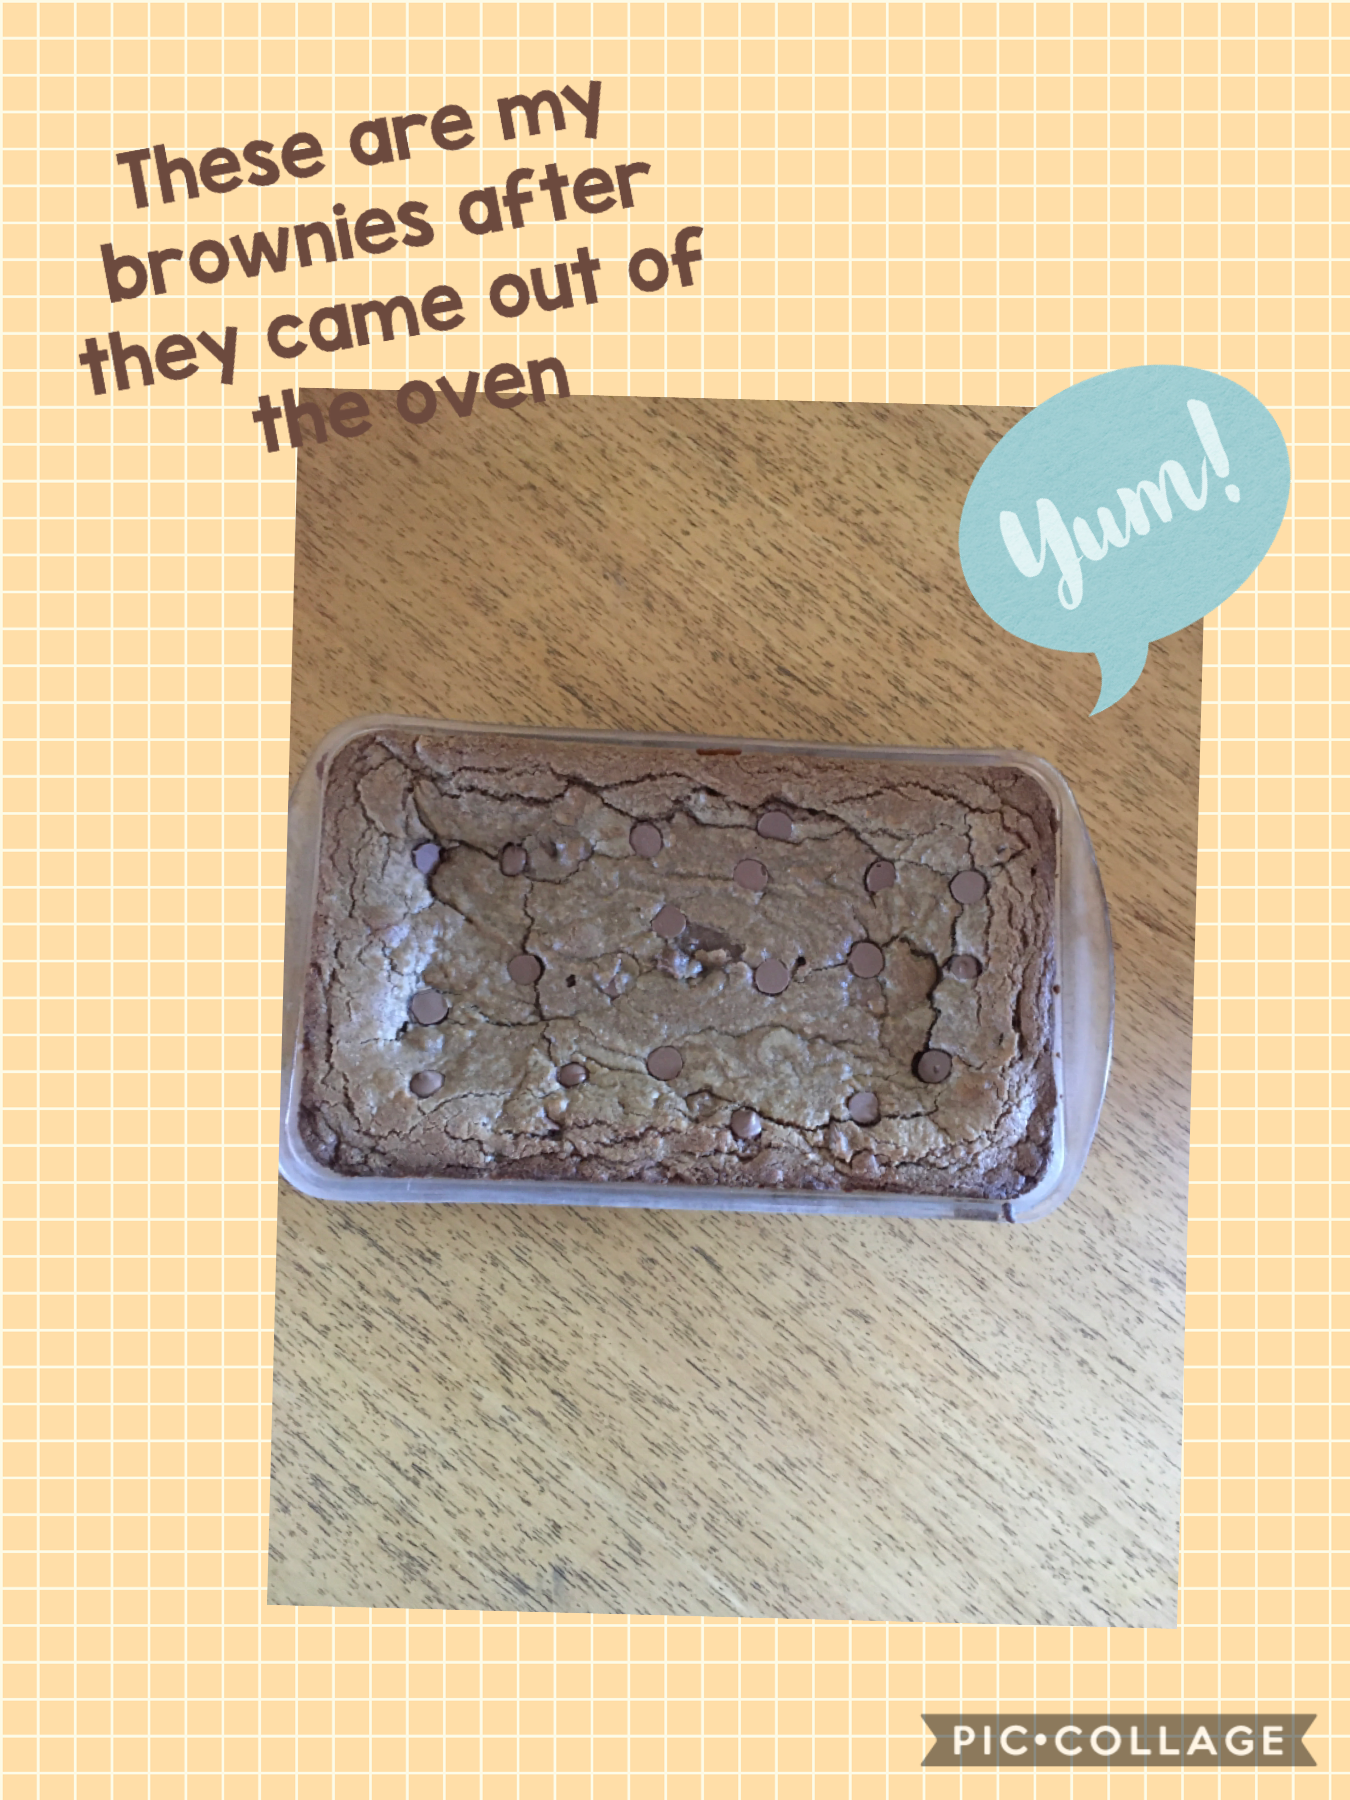 🧡BrOwNiEs🧡 If you tapped congrats! Do you like brownies?